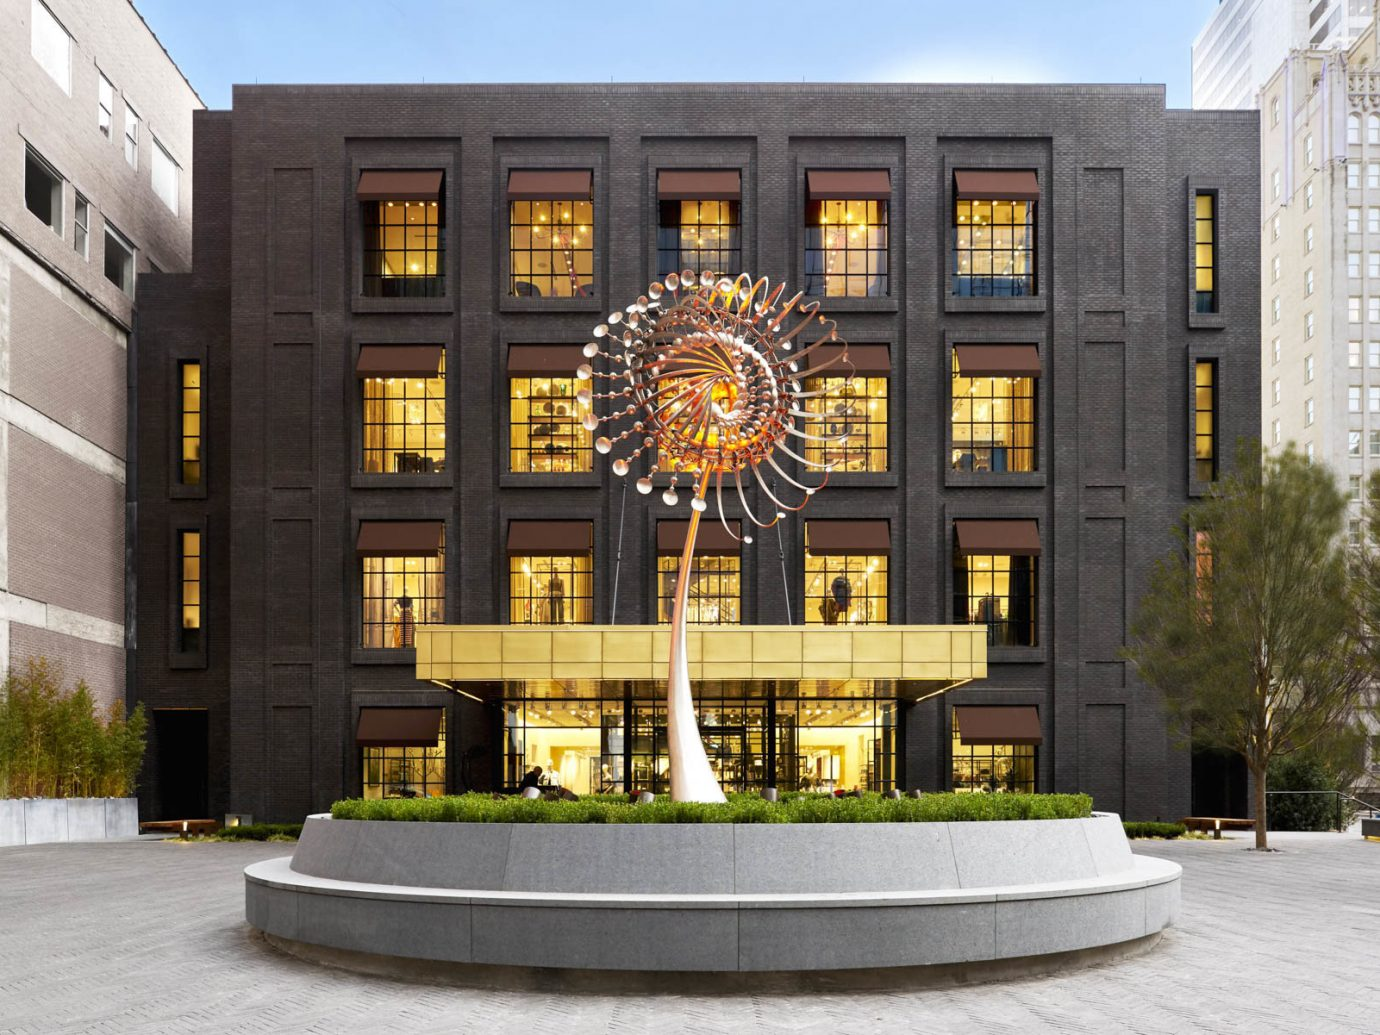 Jetsetter Guides building outdoor landmark Architecture plaza facade Downtown estate tourist attraction statue tall